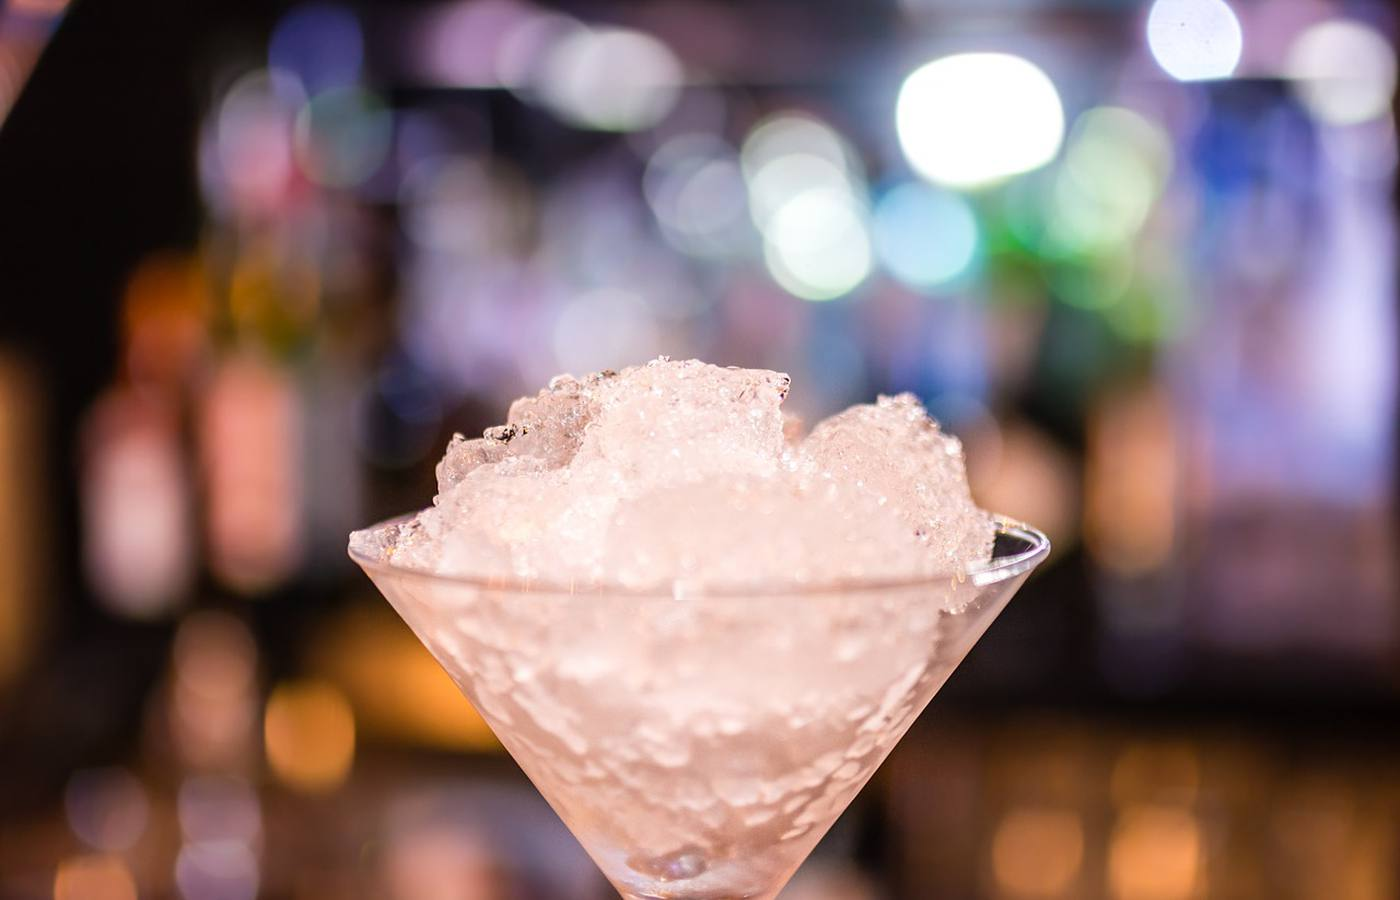 The Most Expensive Vodka in the World: Three Fifths You Should Know About